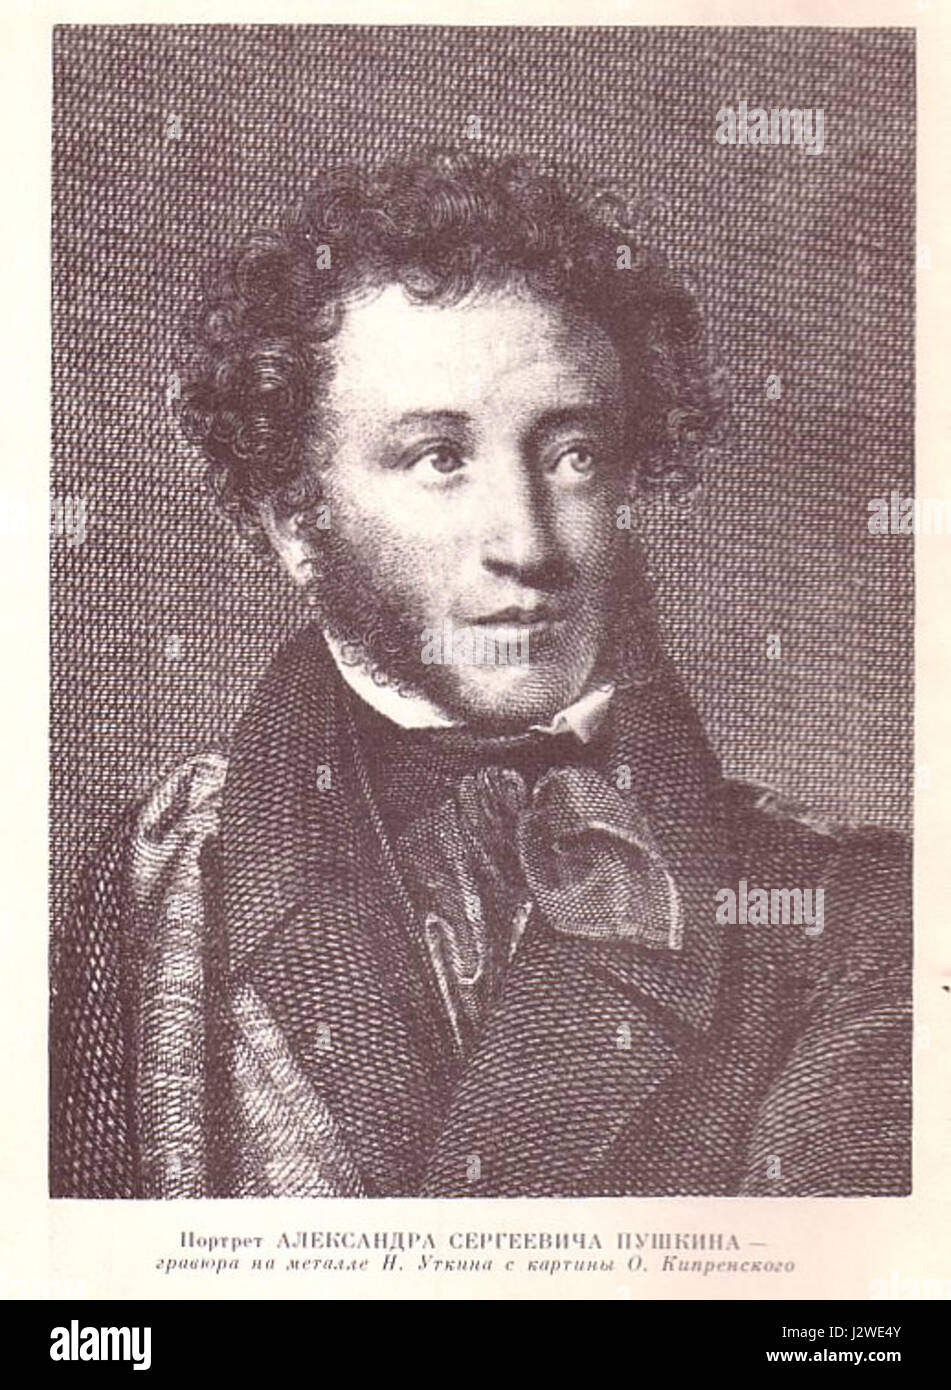 pushkin exam Pushkin exam at lyceum  alexander pushkin introduced russia to all the european literary genres as well as a great number of west european writers he brought.